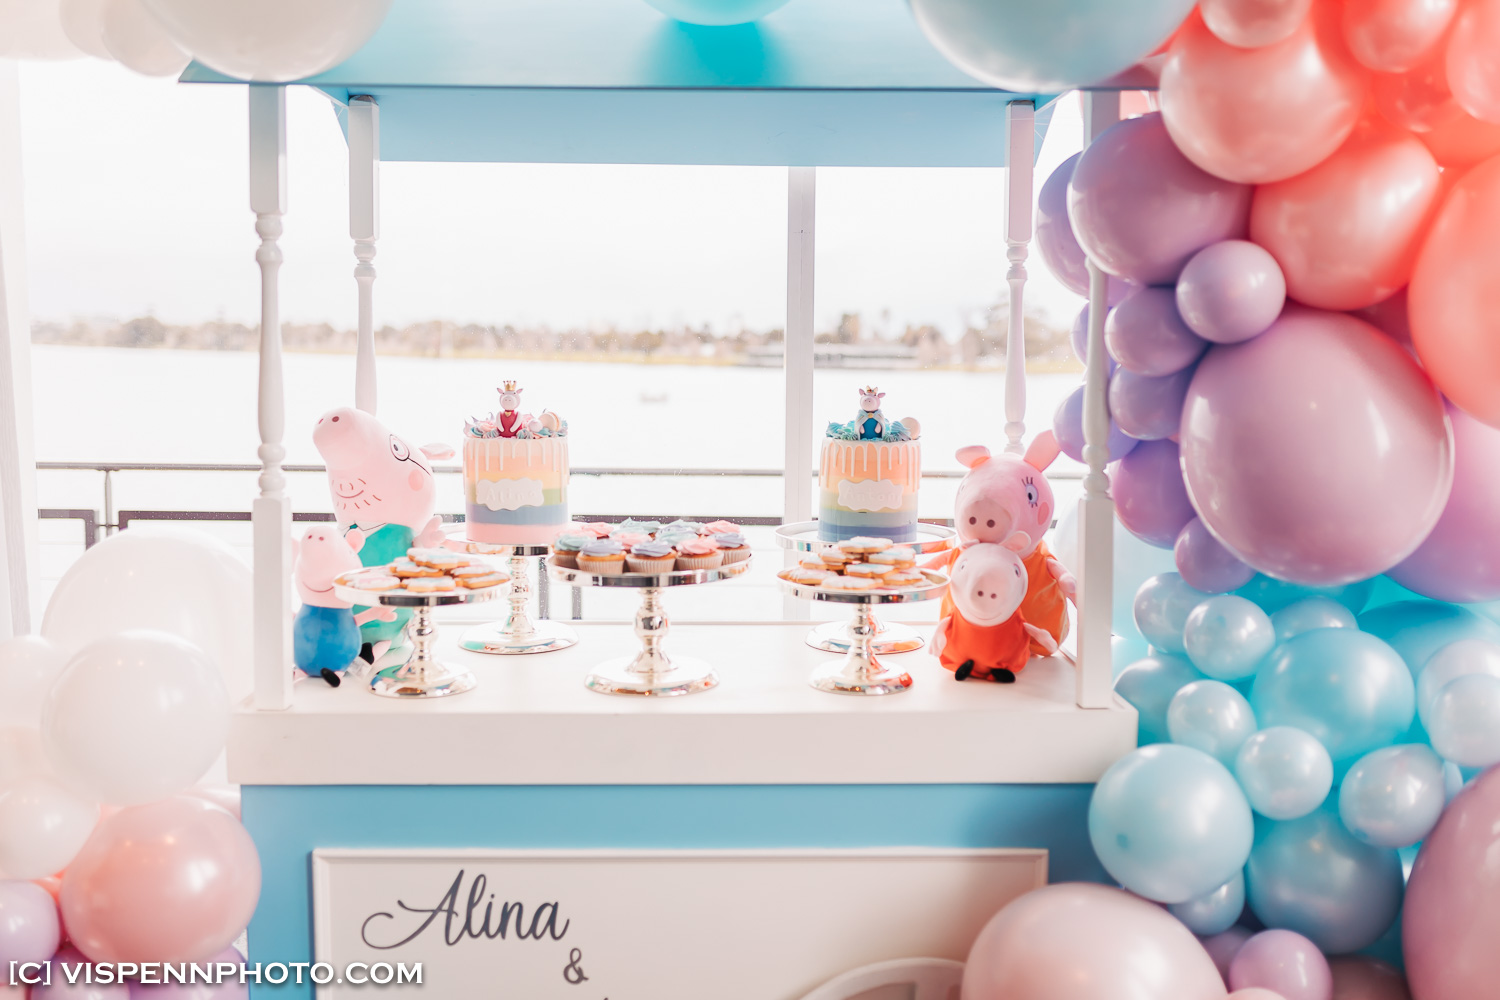 Melbourne Baby Family Birthday Party Photographer 墨尔本 百日宴 满月宴 周岁宴 摄影 VISPENN 5D5 8249